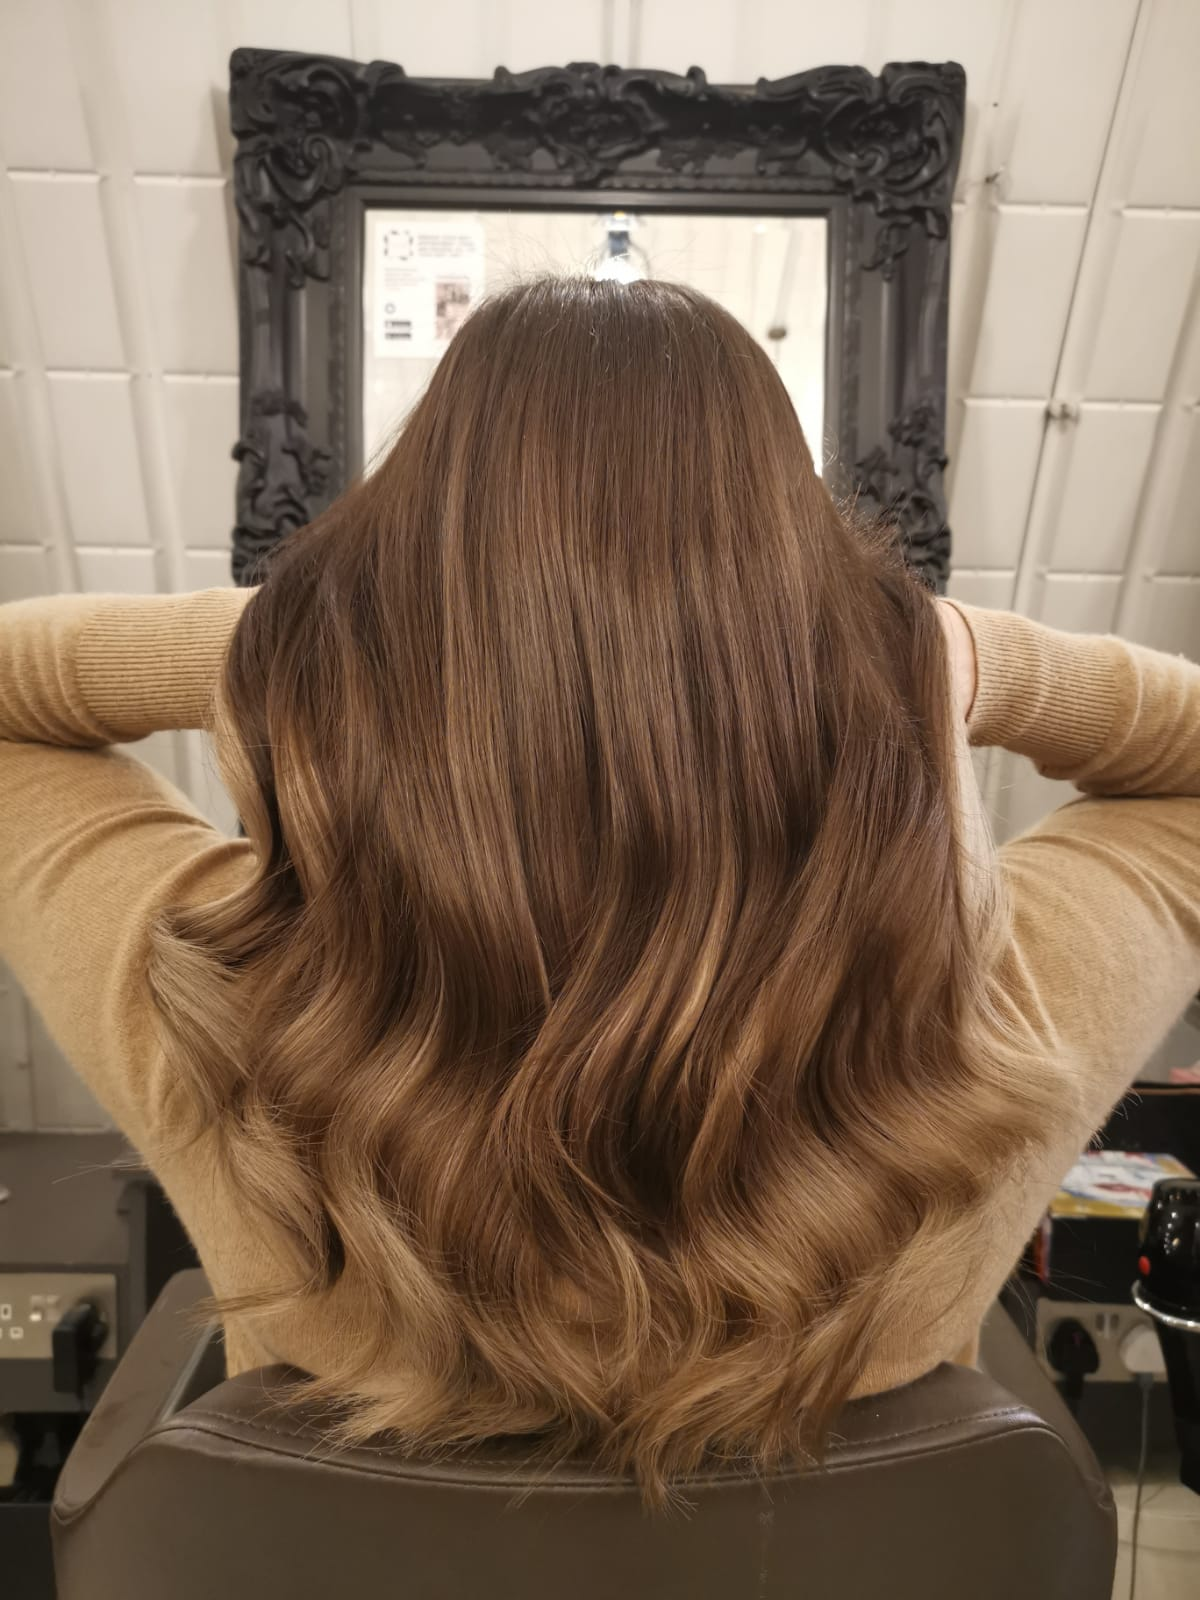 Clapham hair extensions for length and volume at London salon